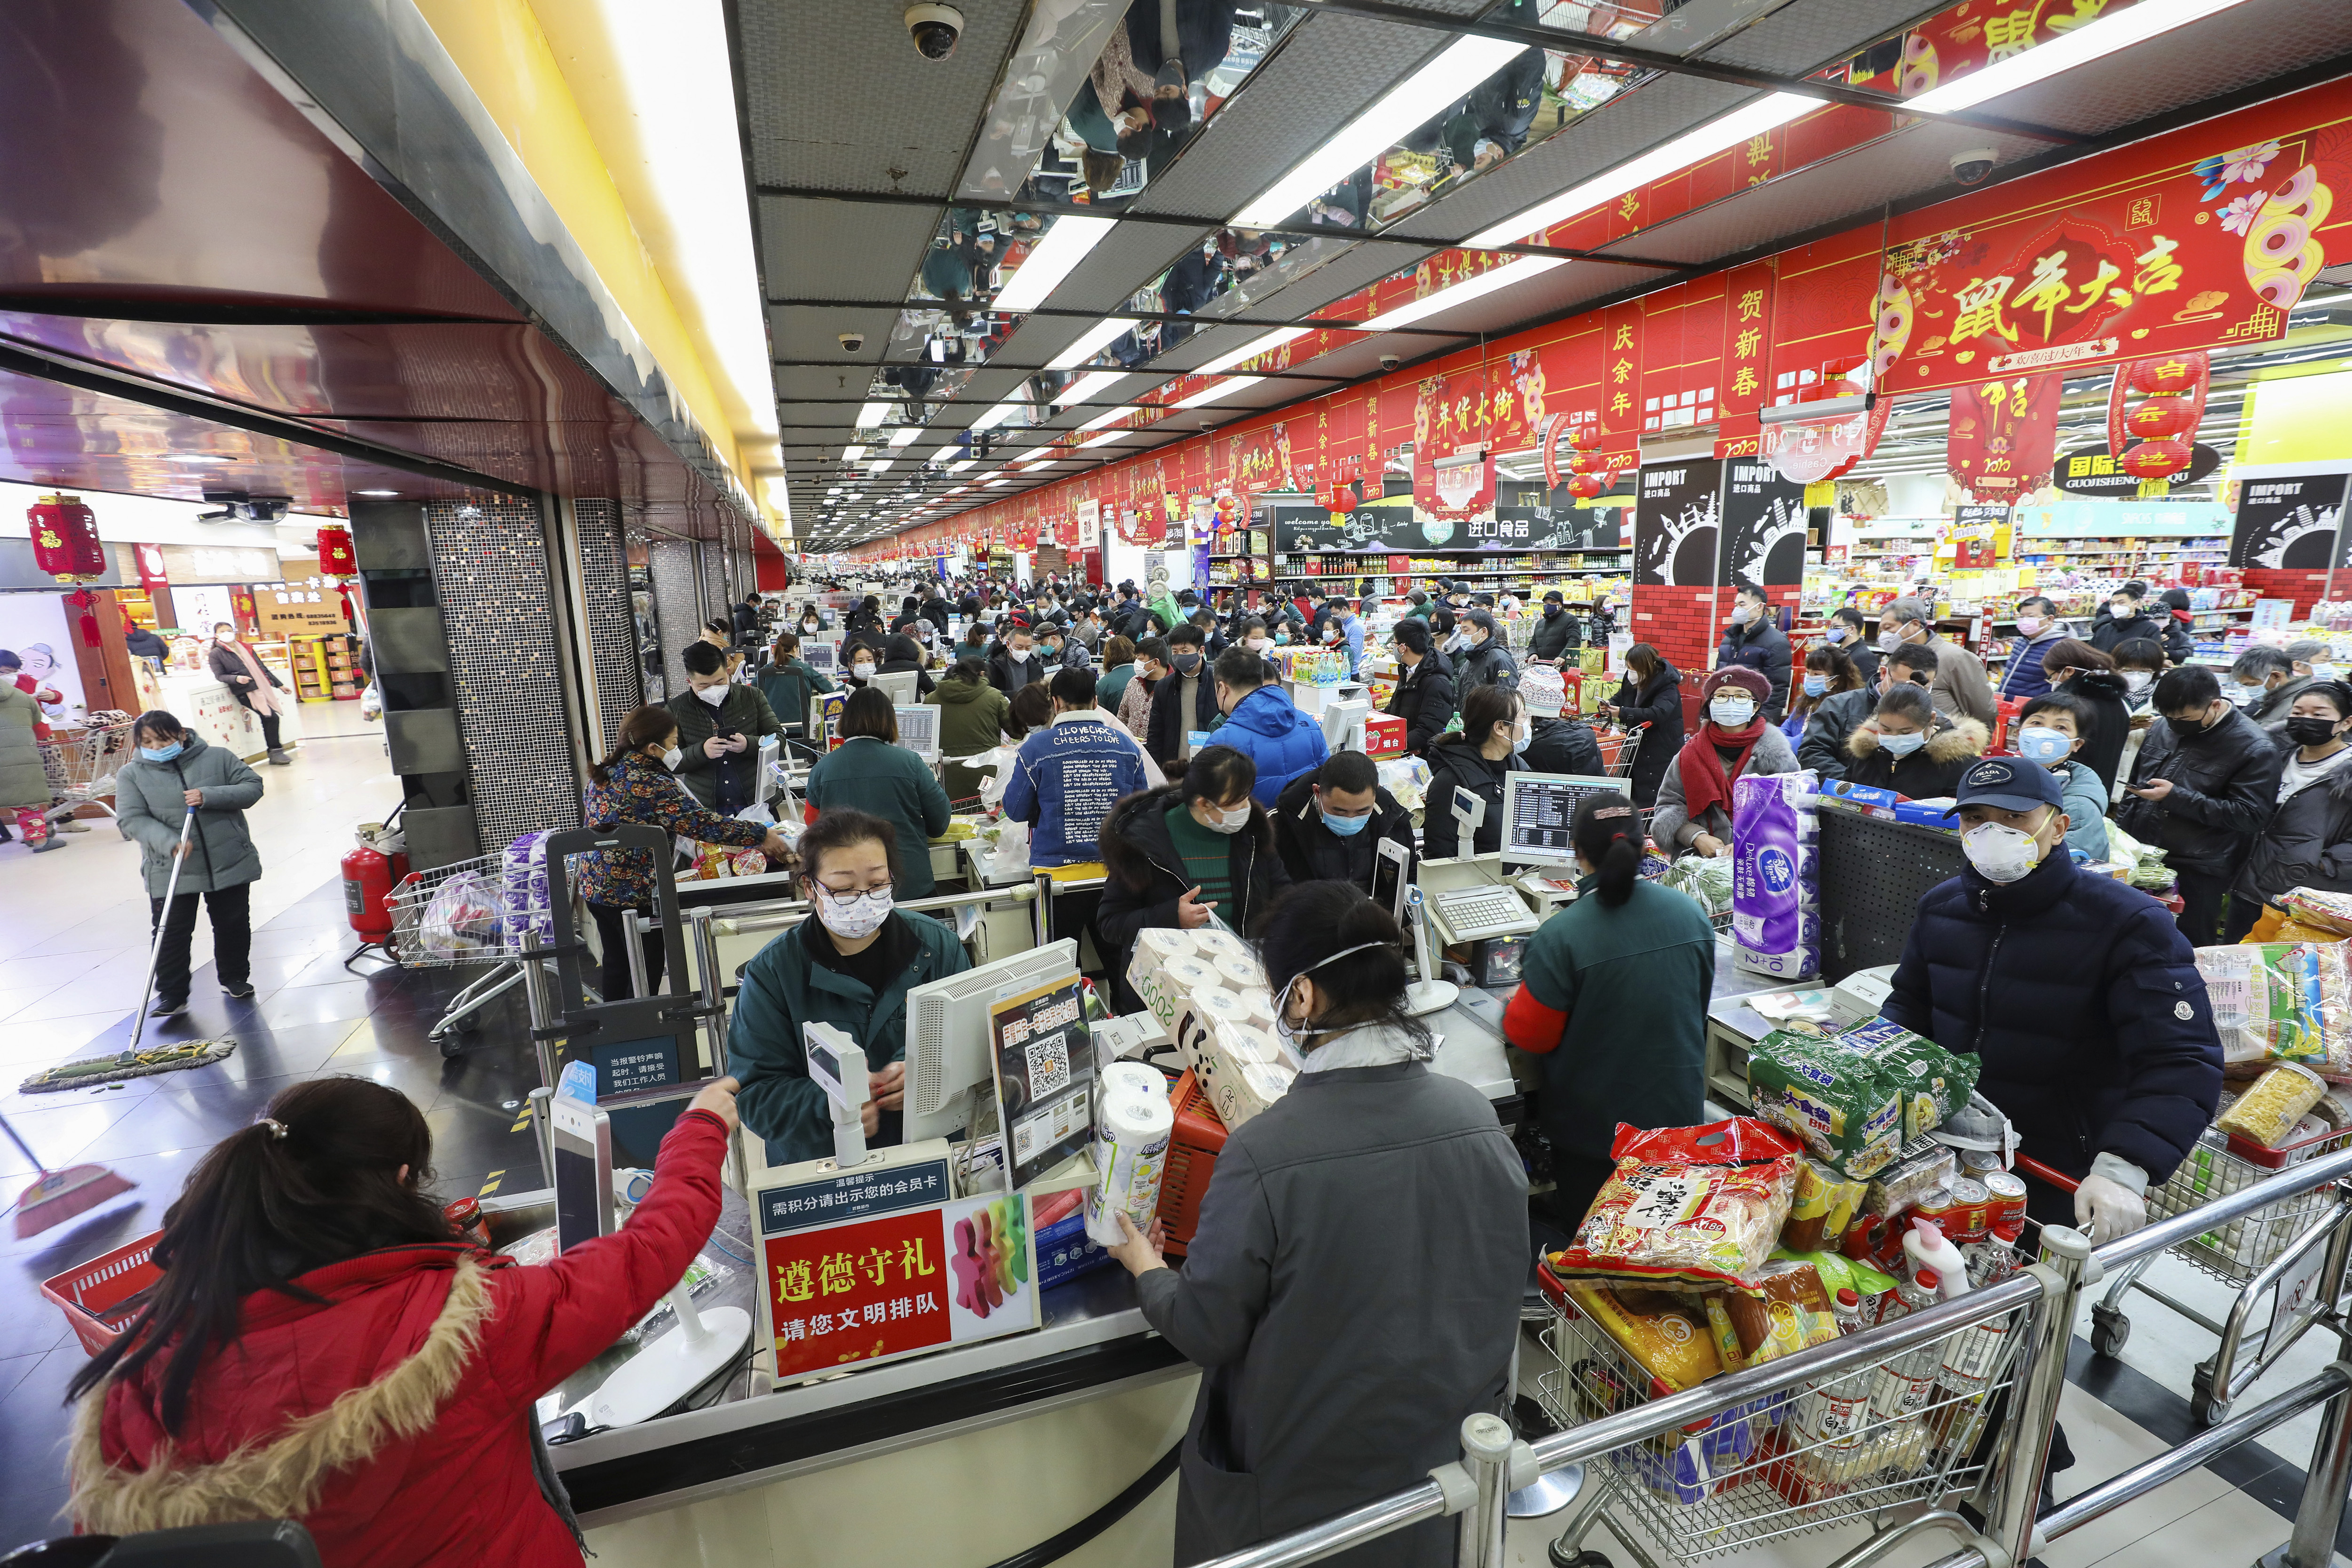 Shoppers wearing face masks pay for their groceries at a supermarket in Wuhan on Saturday.